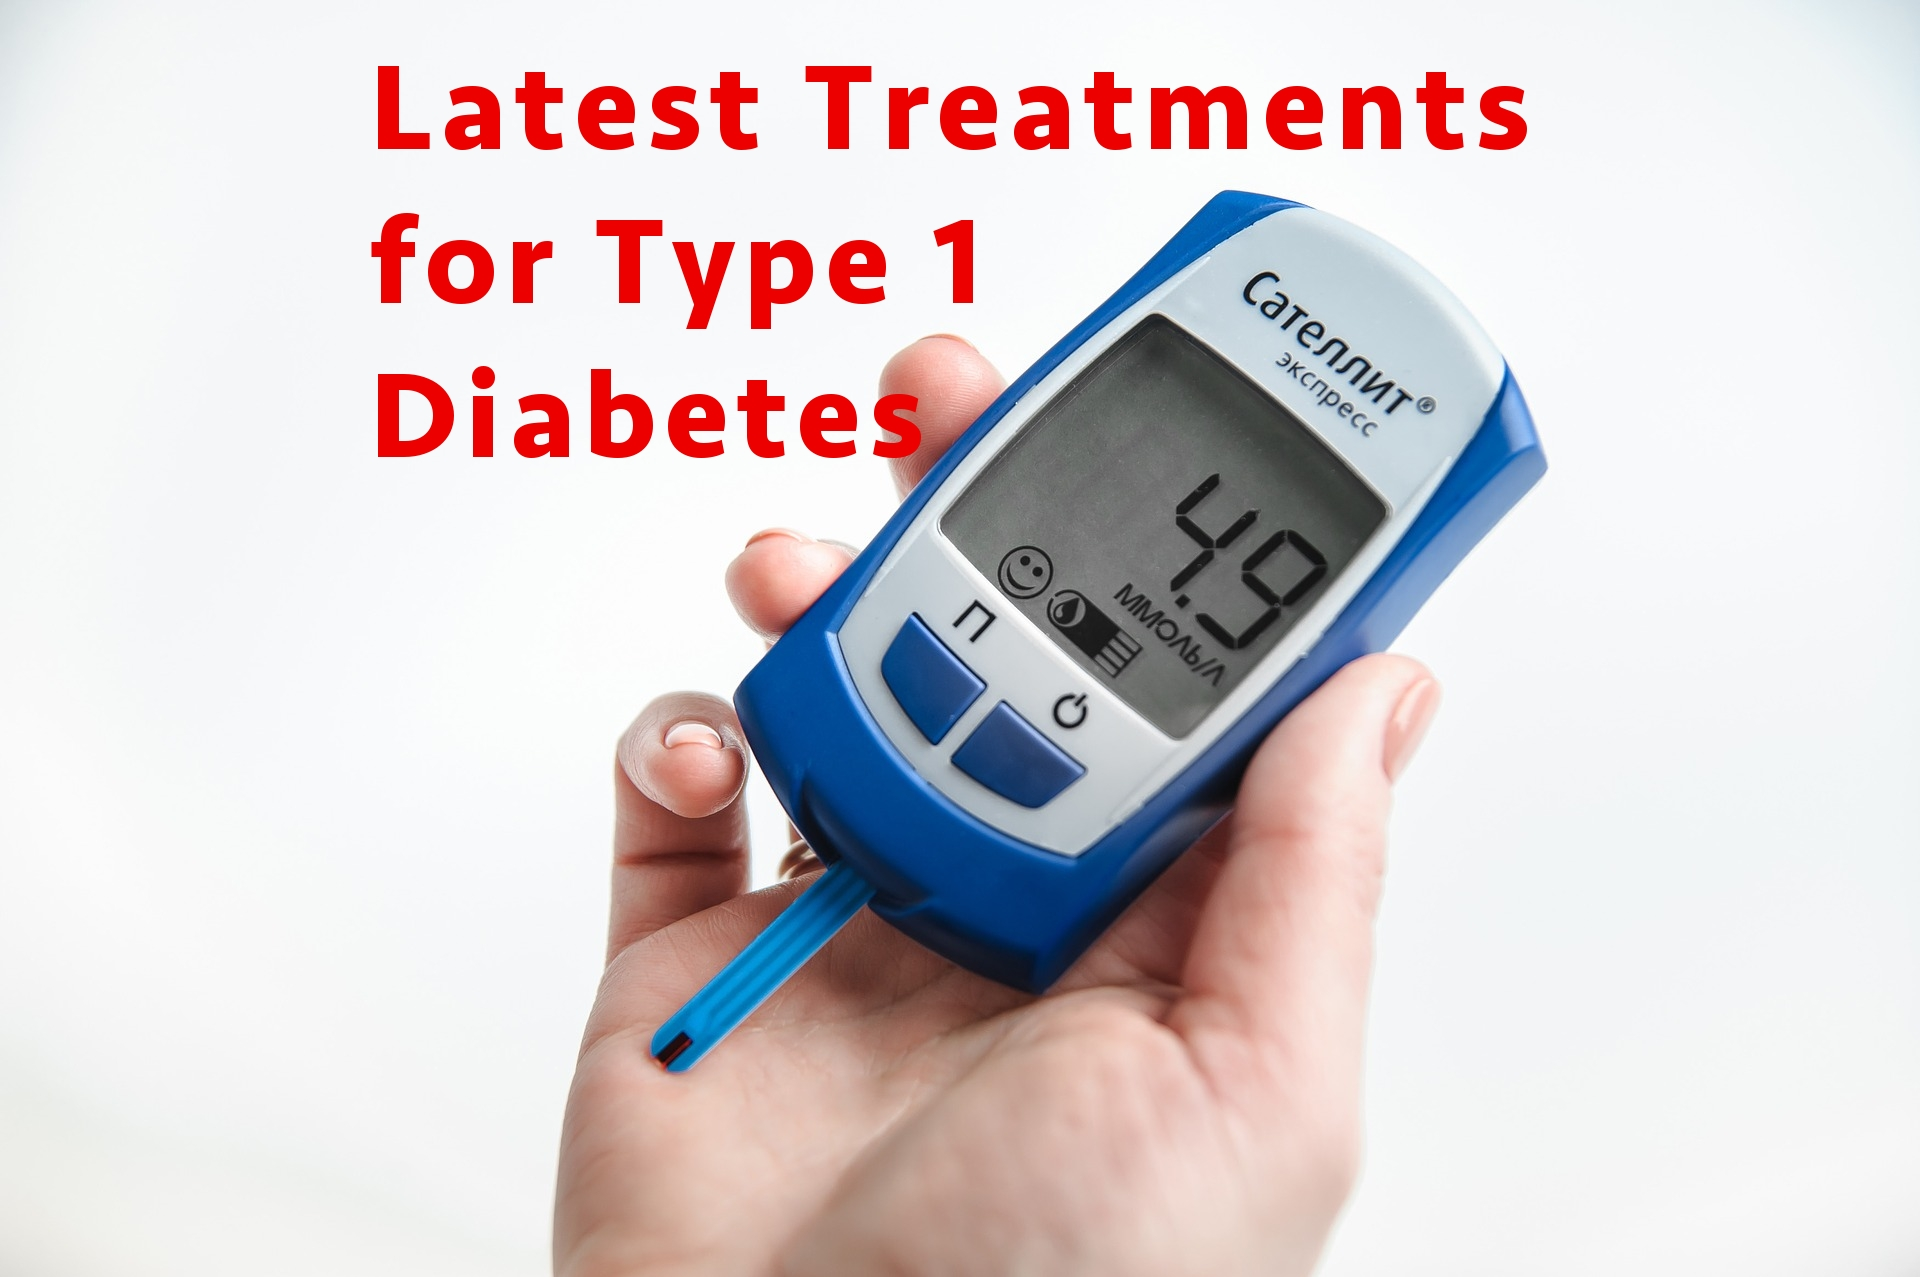 Latest Treatments for Type 1 Diabetes